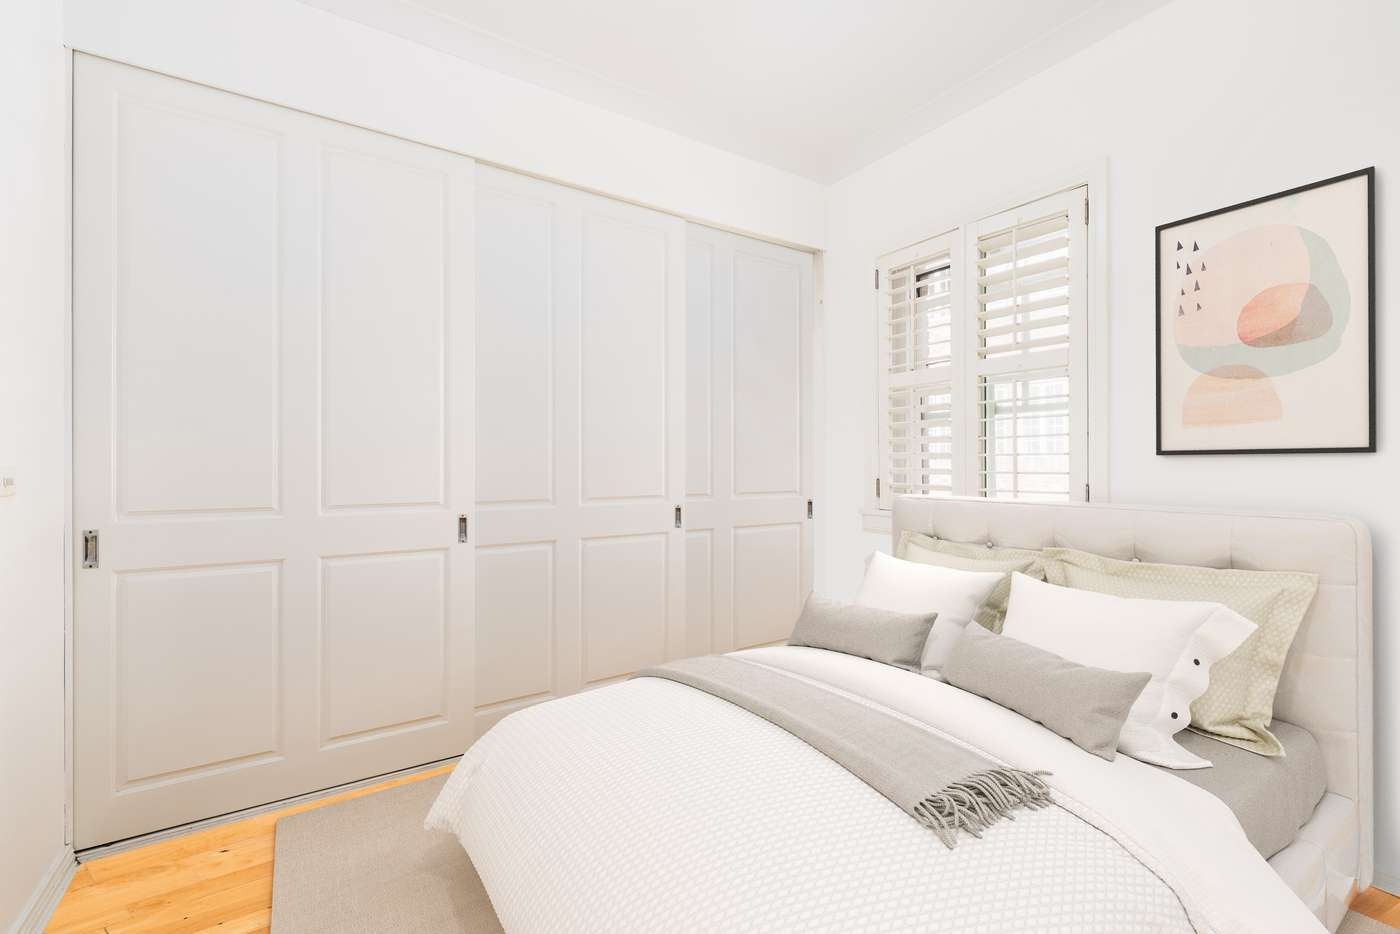 Fourth view of Homely apartment listing, 6/12 Tusculum Street, Potts Point NSW 2011